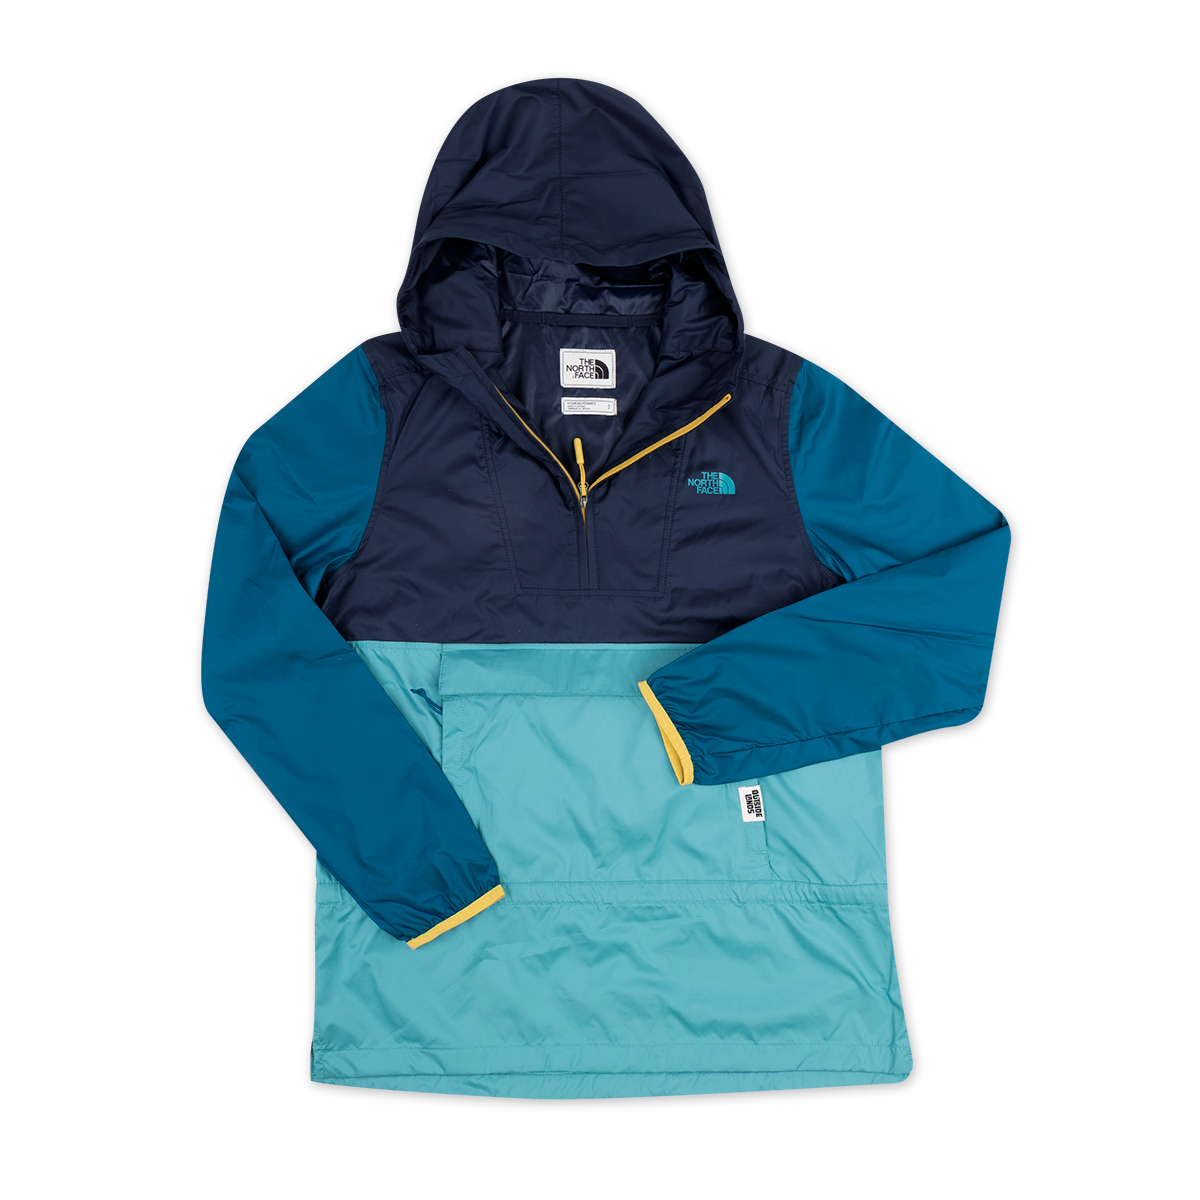 North Face Jacket Lite Blue/Navy